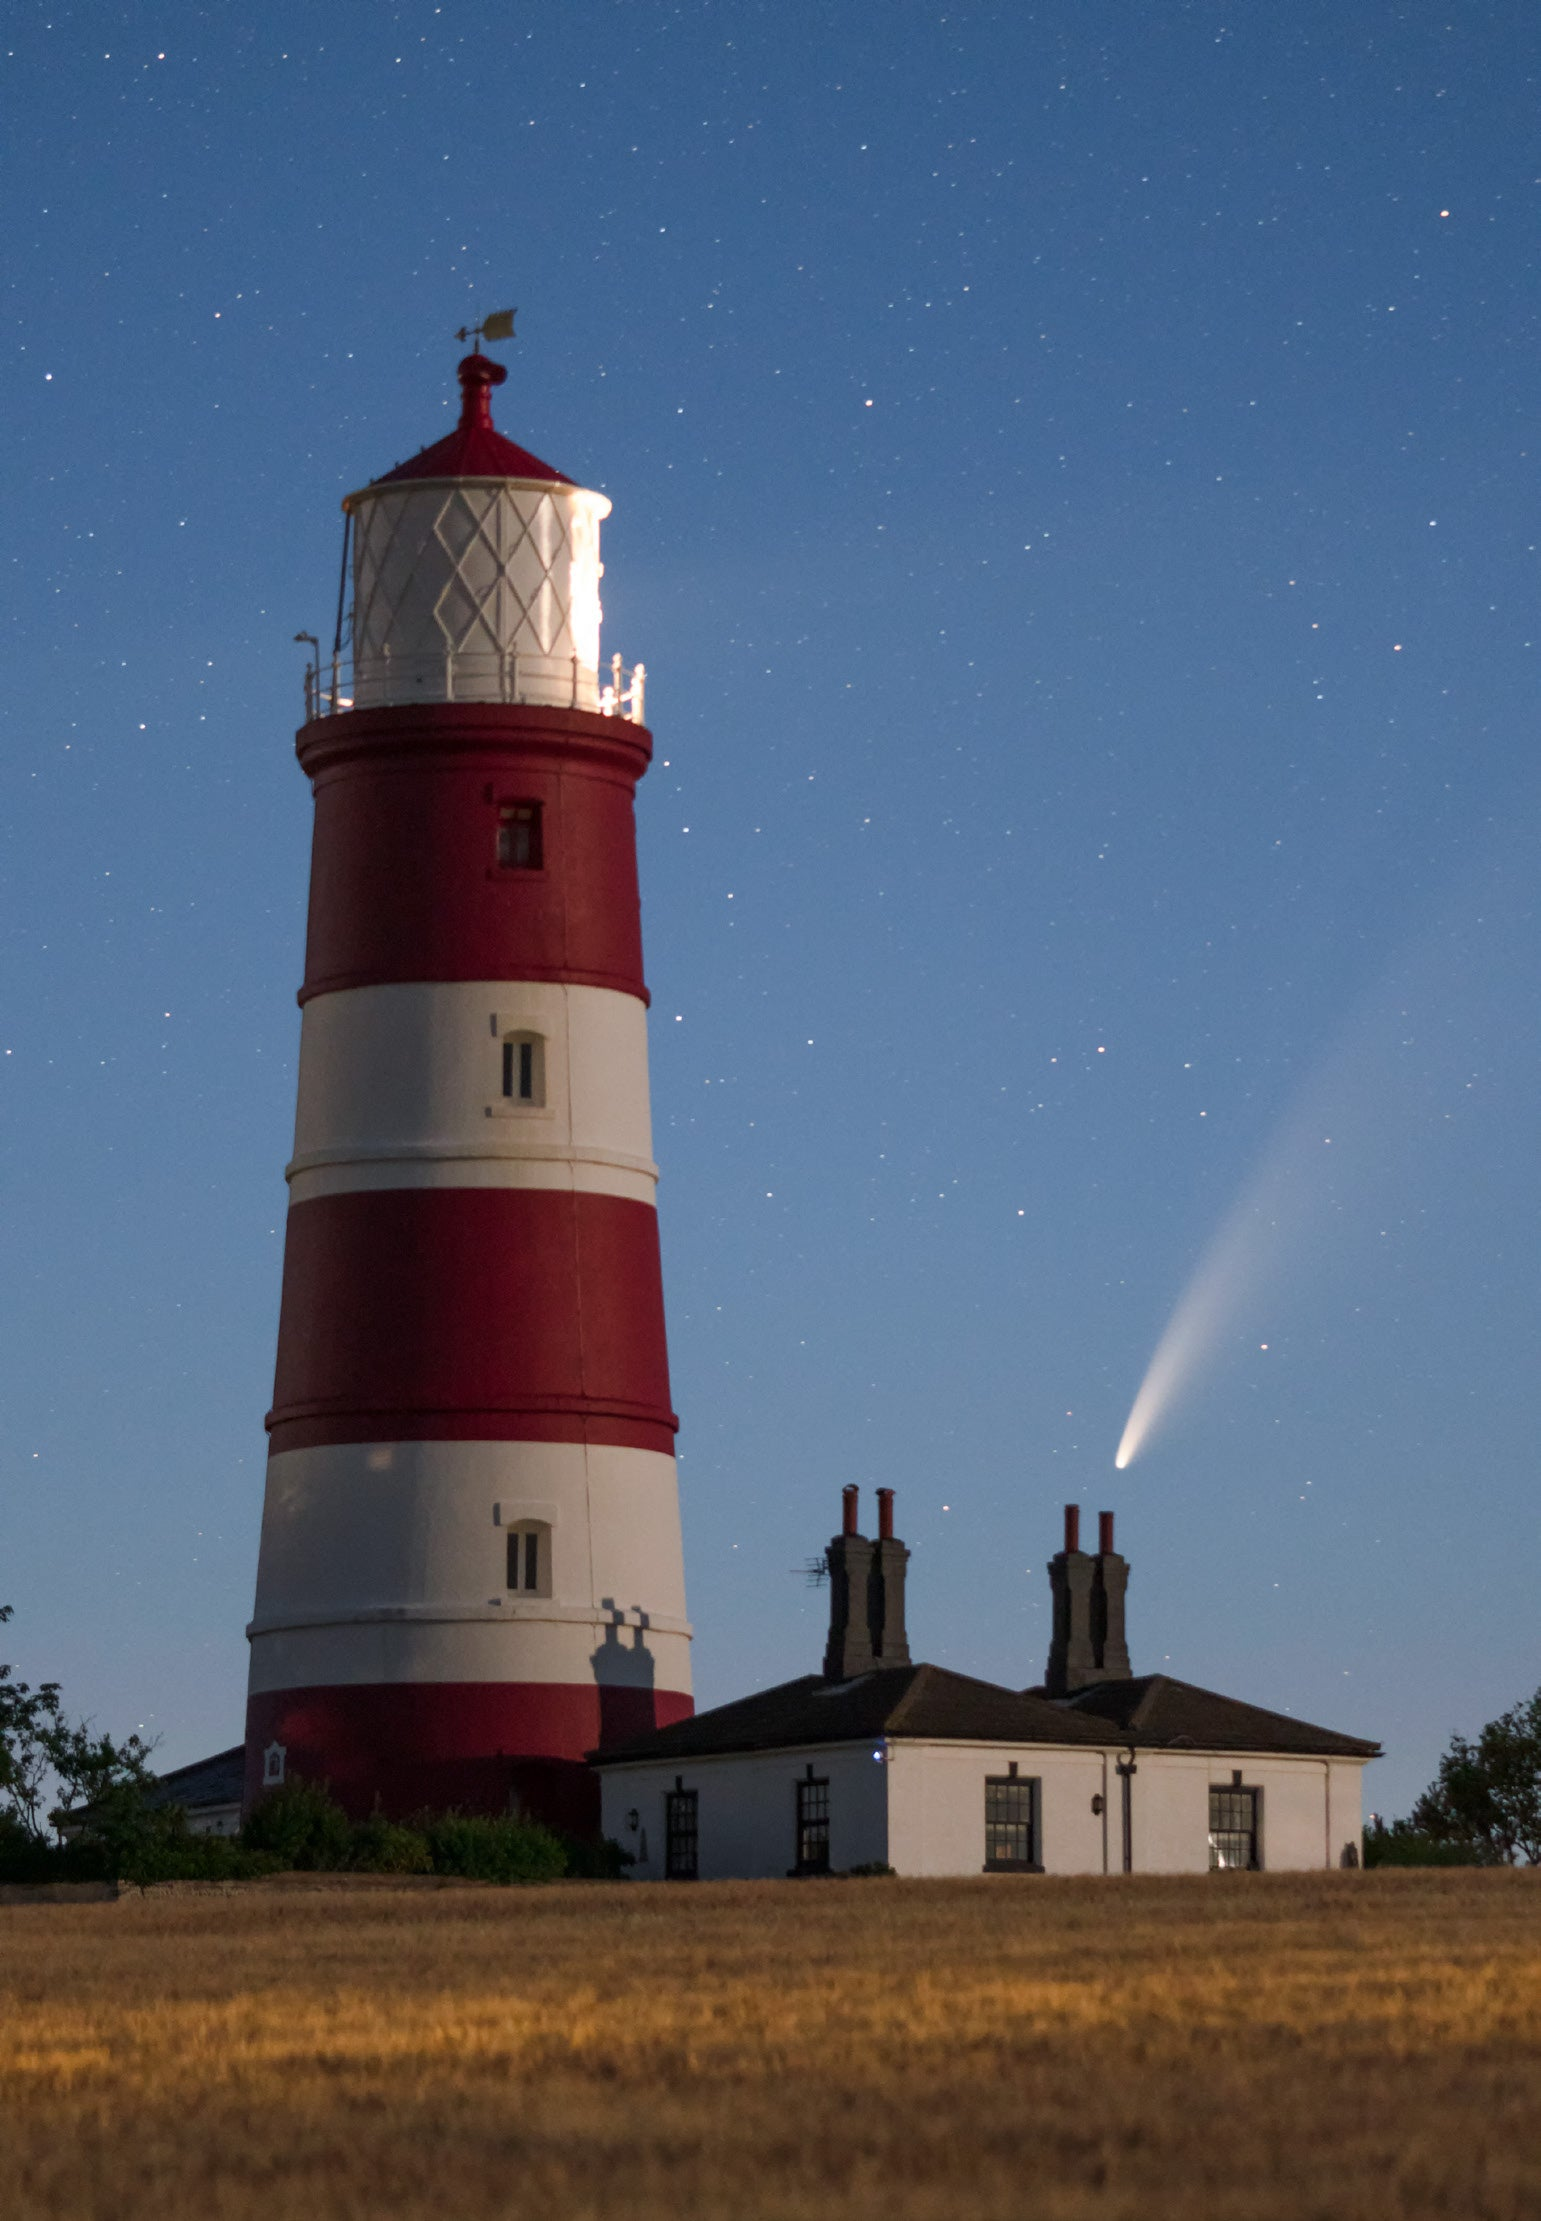 Neowise comet as photographed at night against a Norfolk, UK lighthouse and starlight sky